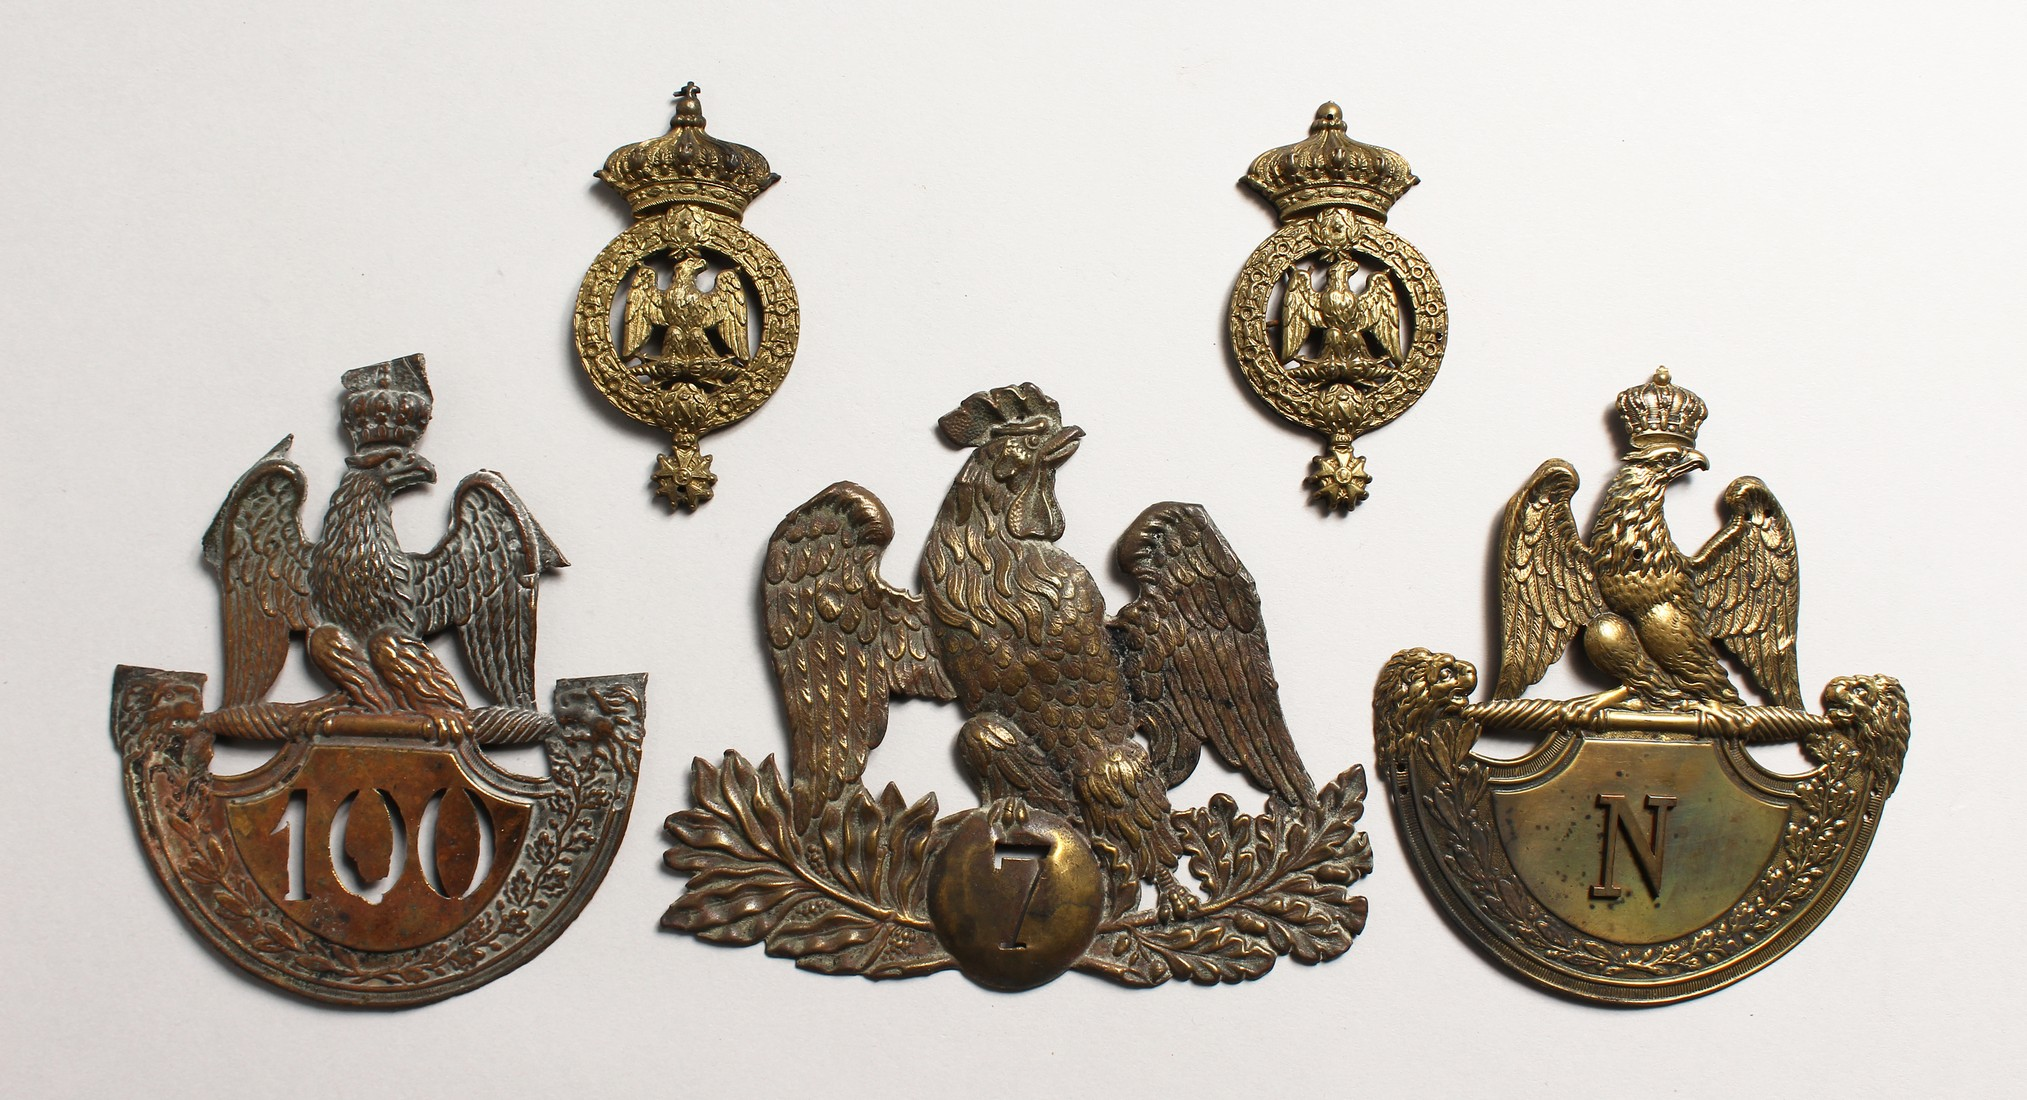 THREE LARGE NAPOLEONIC BRASS BADGES and two small badges. (5)